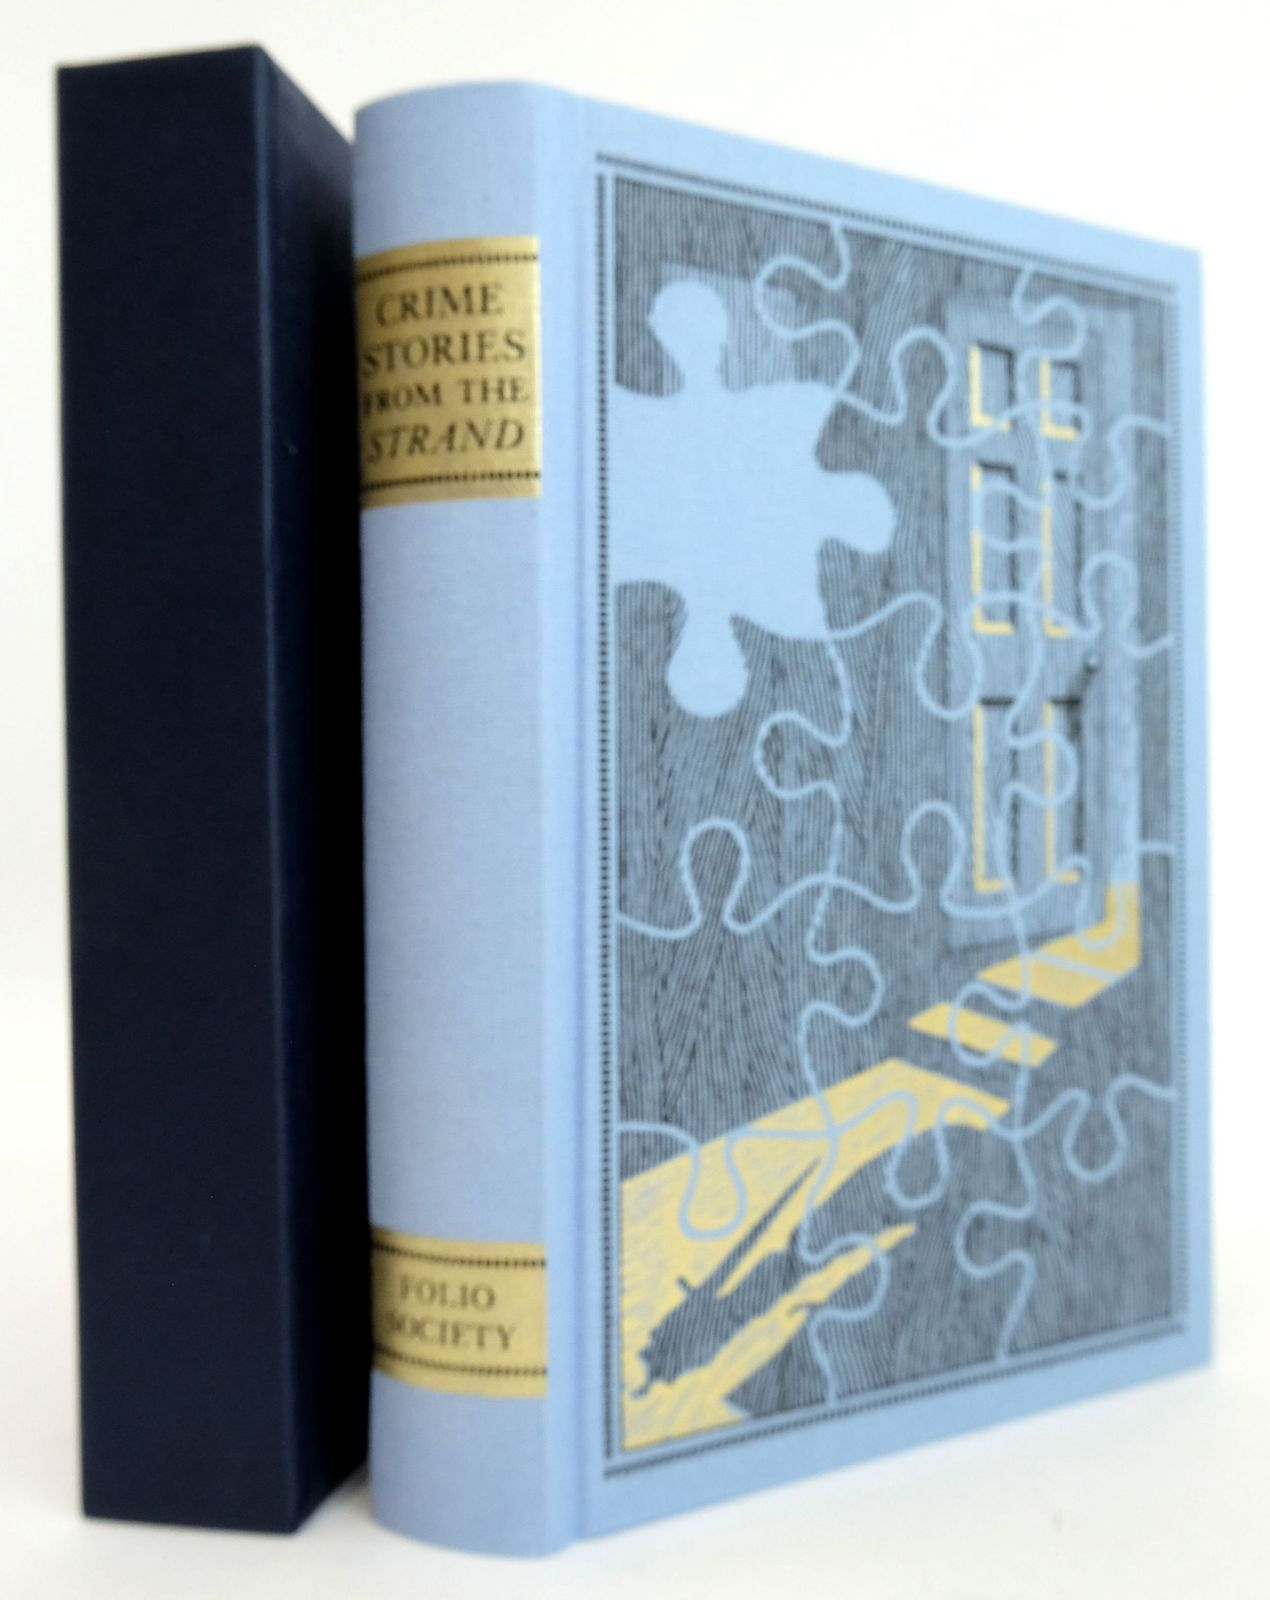 Photo of CRIME STORIES FROM THE 'STRAND' written by Beare, Geraldine Keating, H.R.F. illustrated by Eccles, David published by Folio Society (STOCK CODE: 1820229)  for sale by Stella & Rose's Books